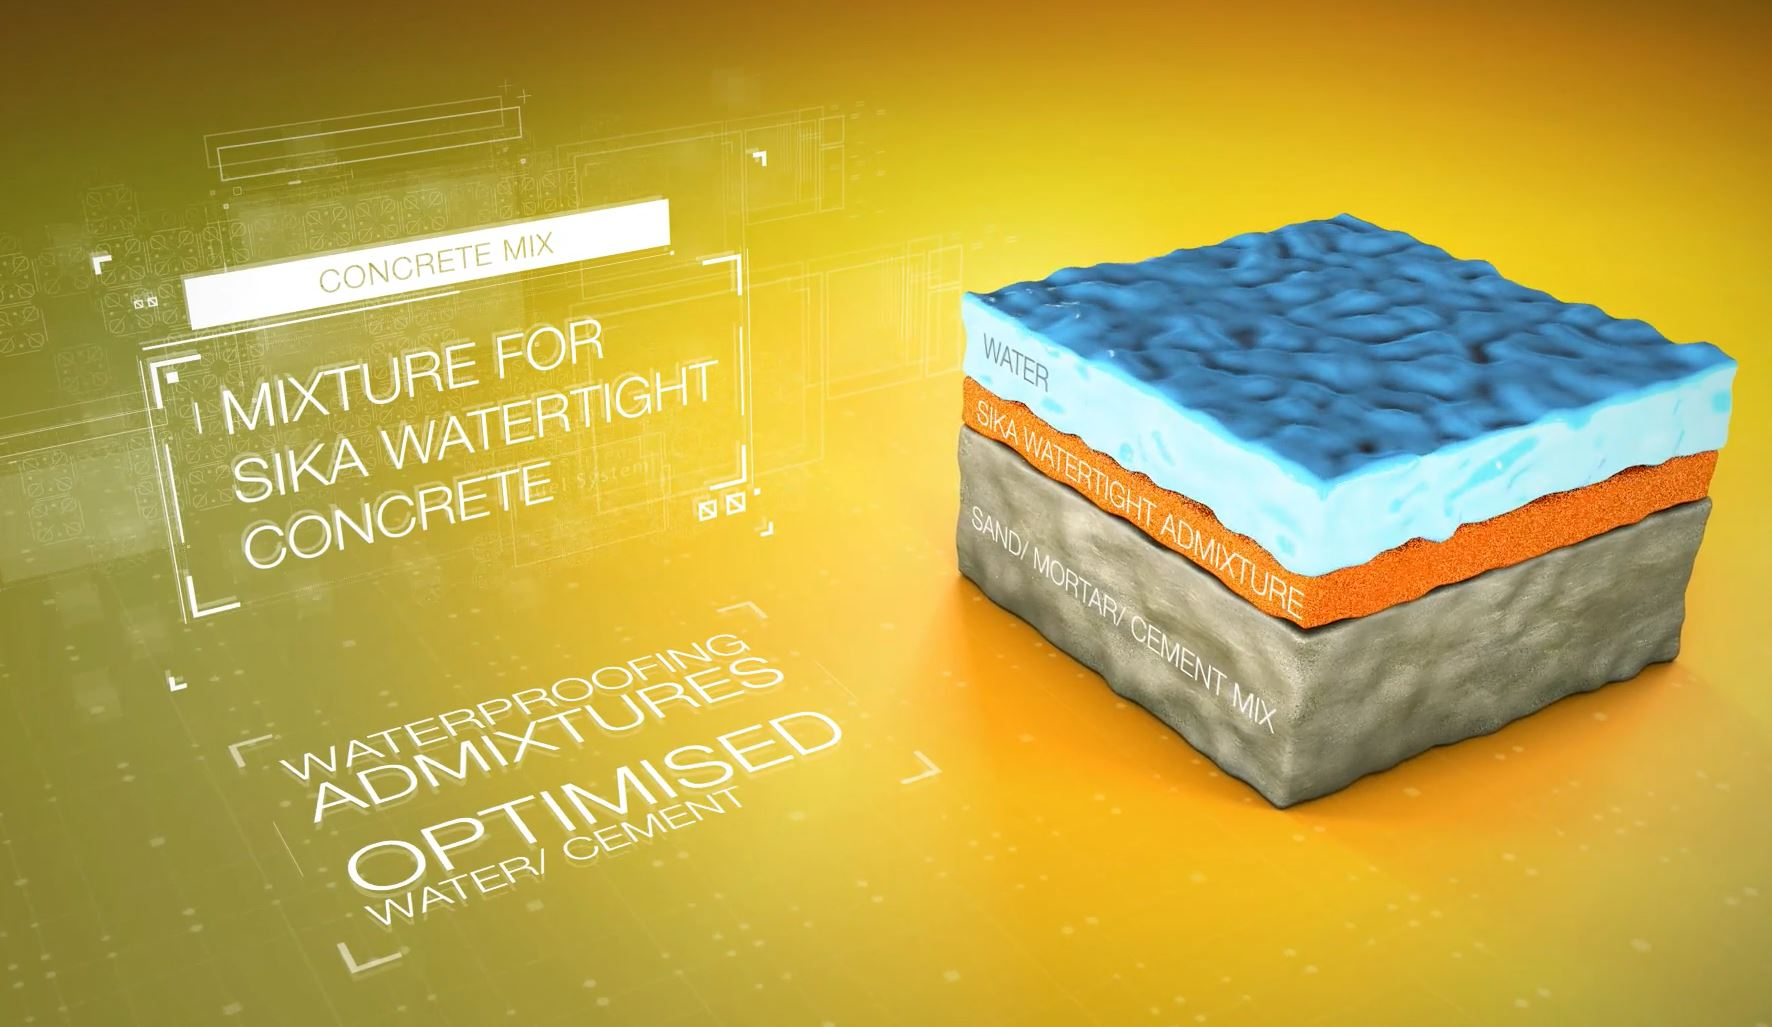 Sika® Watertight Concrete delivers technologically advanced